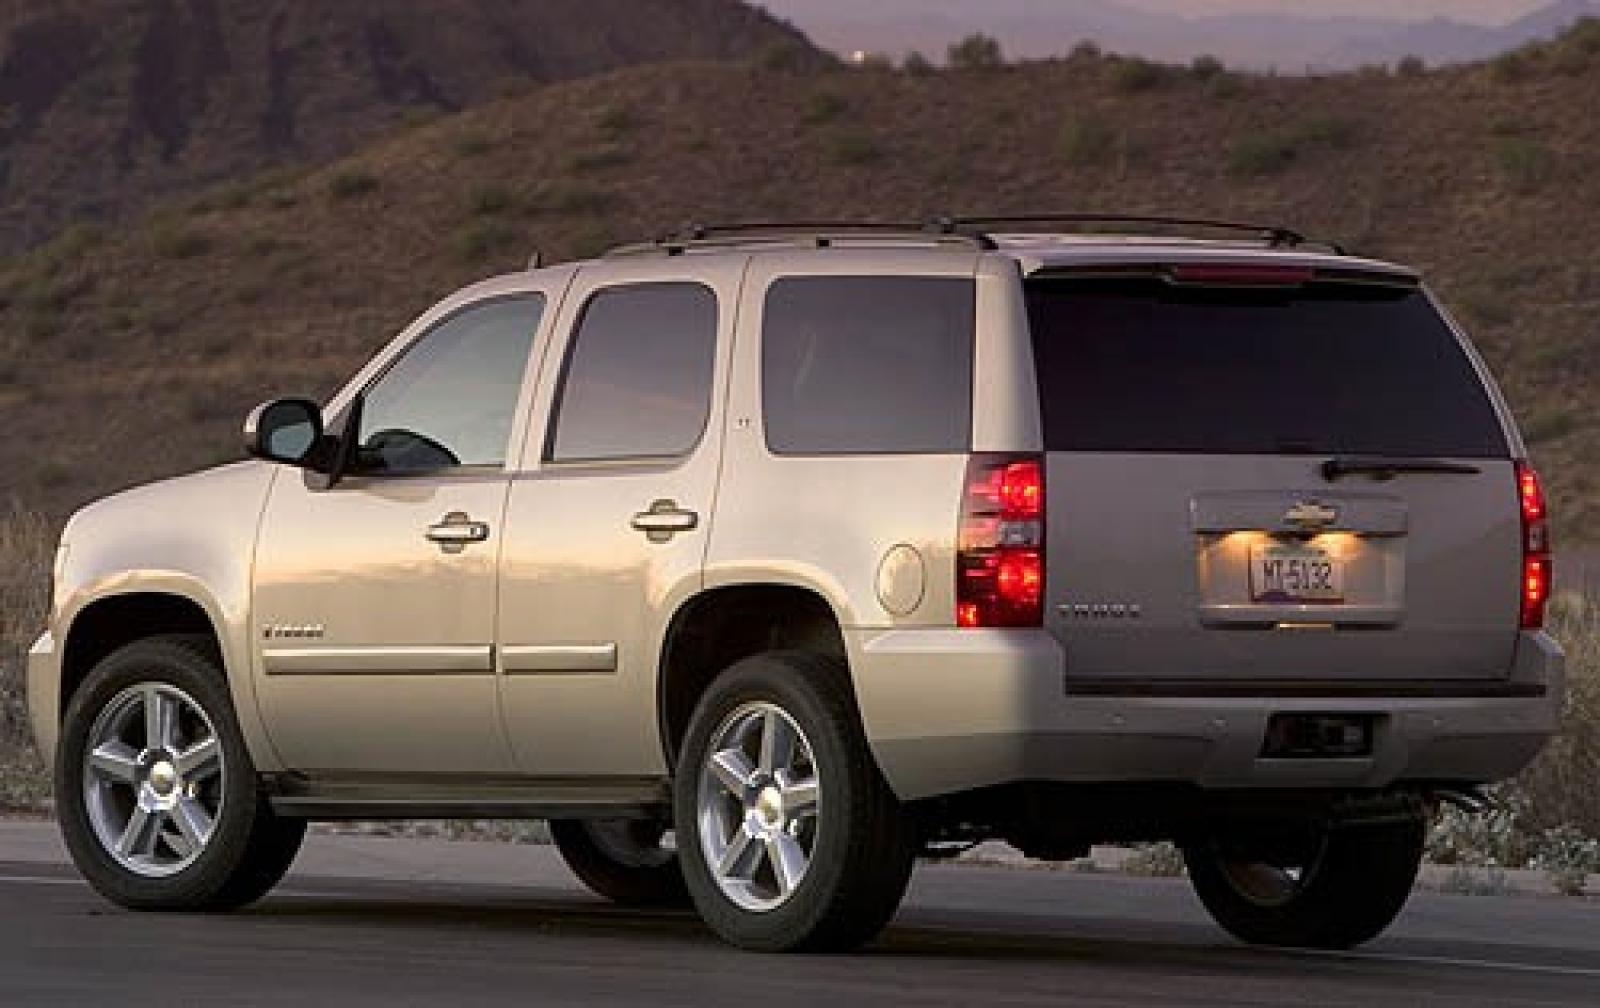 2007 chevrolet tahoe information and photos zombiedrive. Black Bedroom Furniture Sets. Home Design Ideas